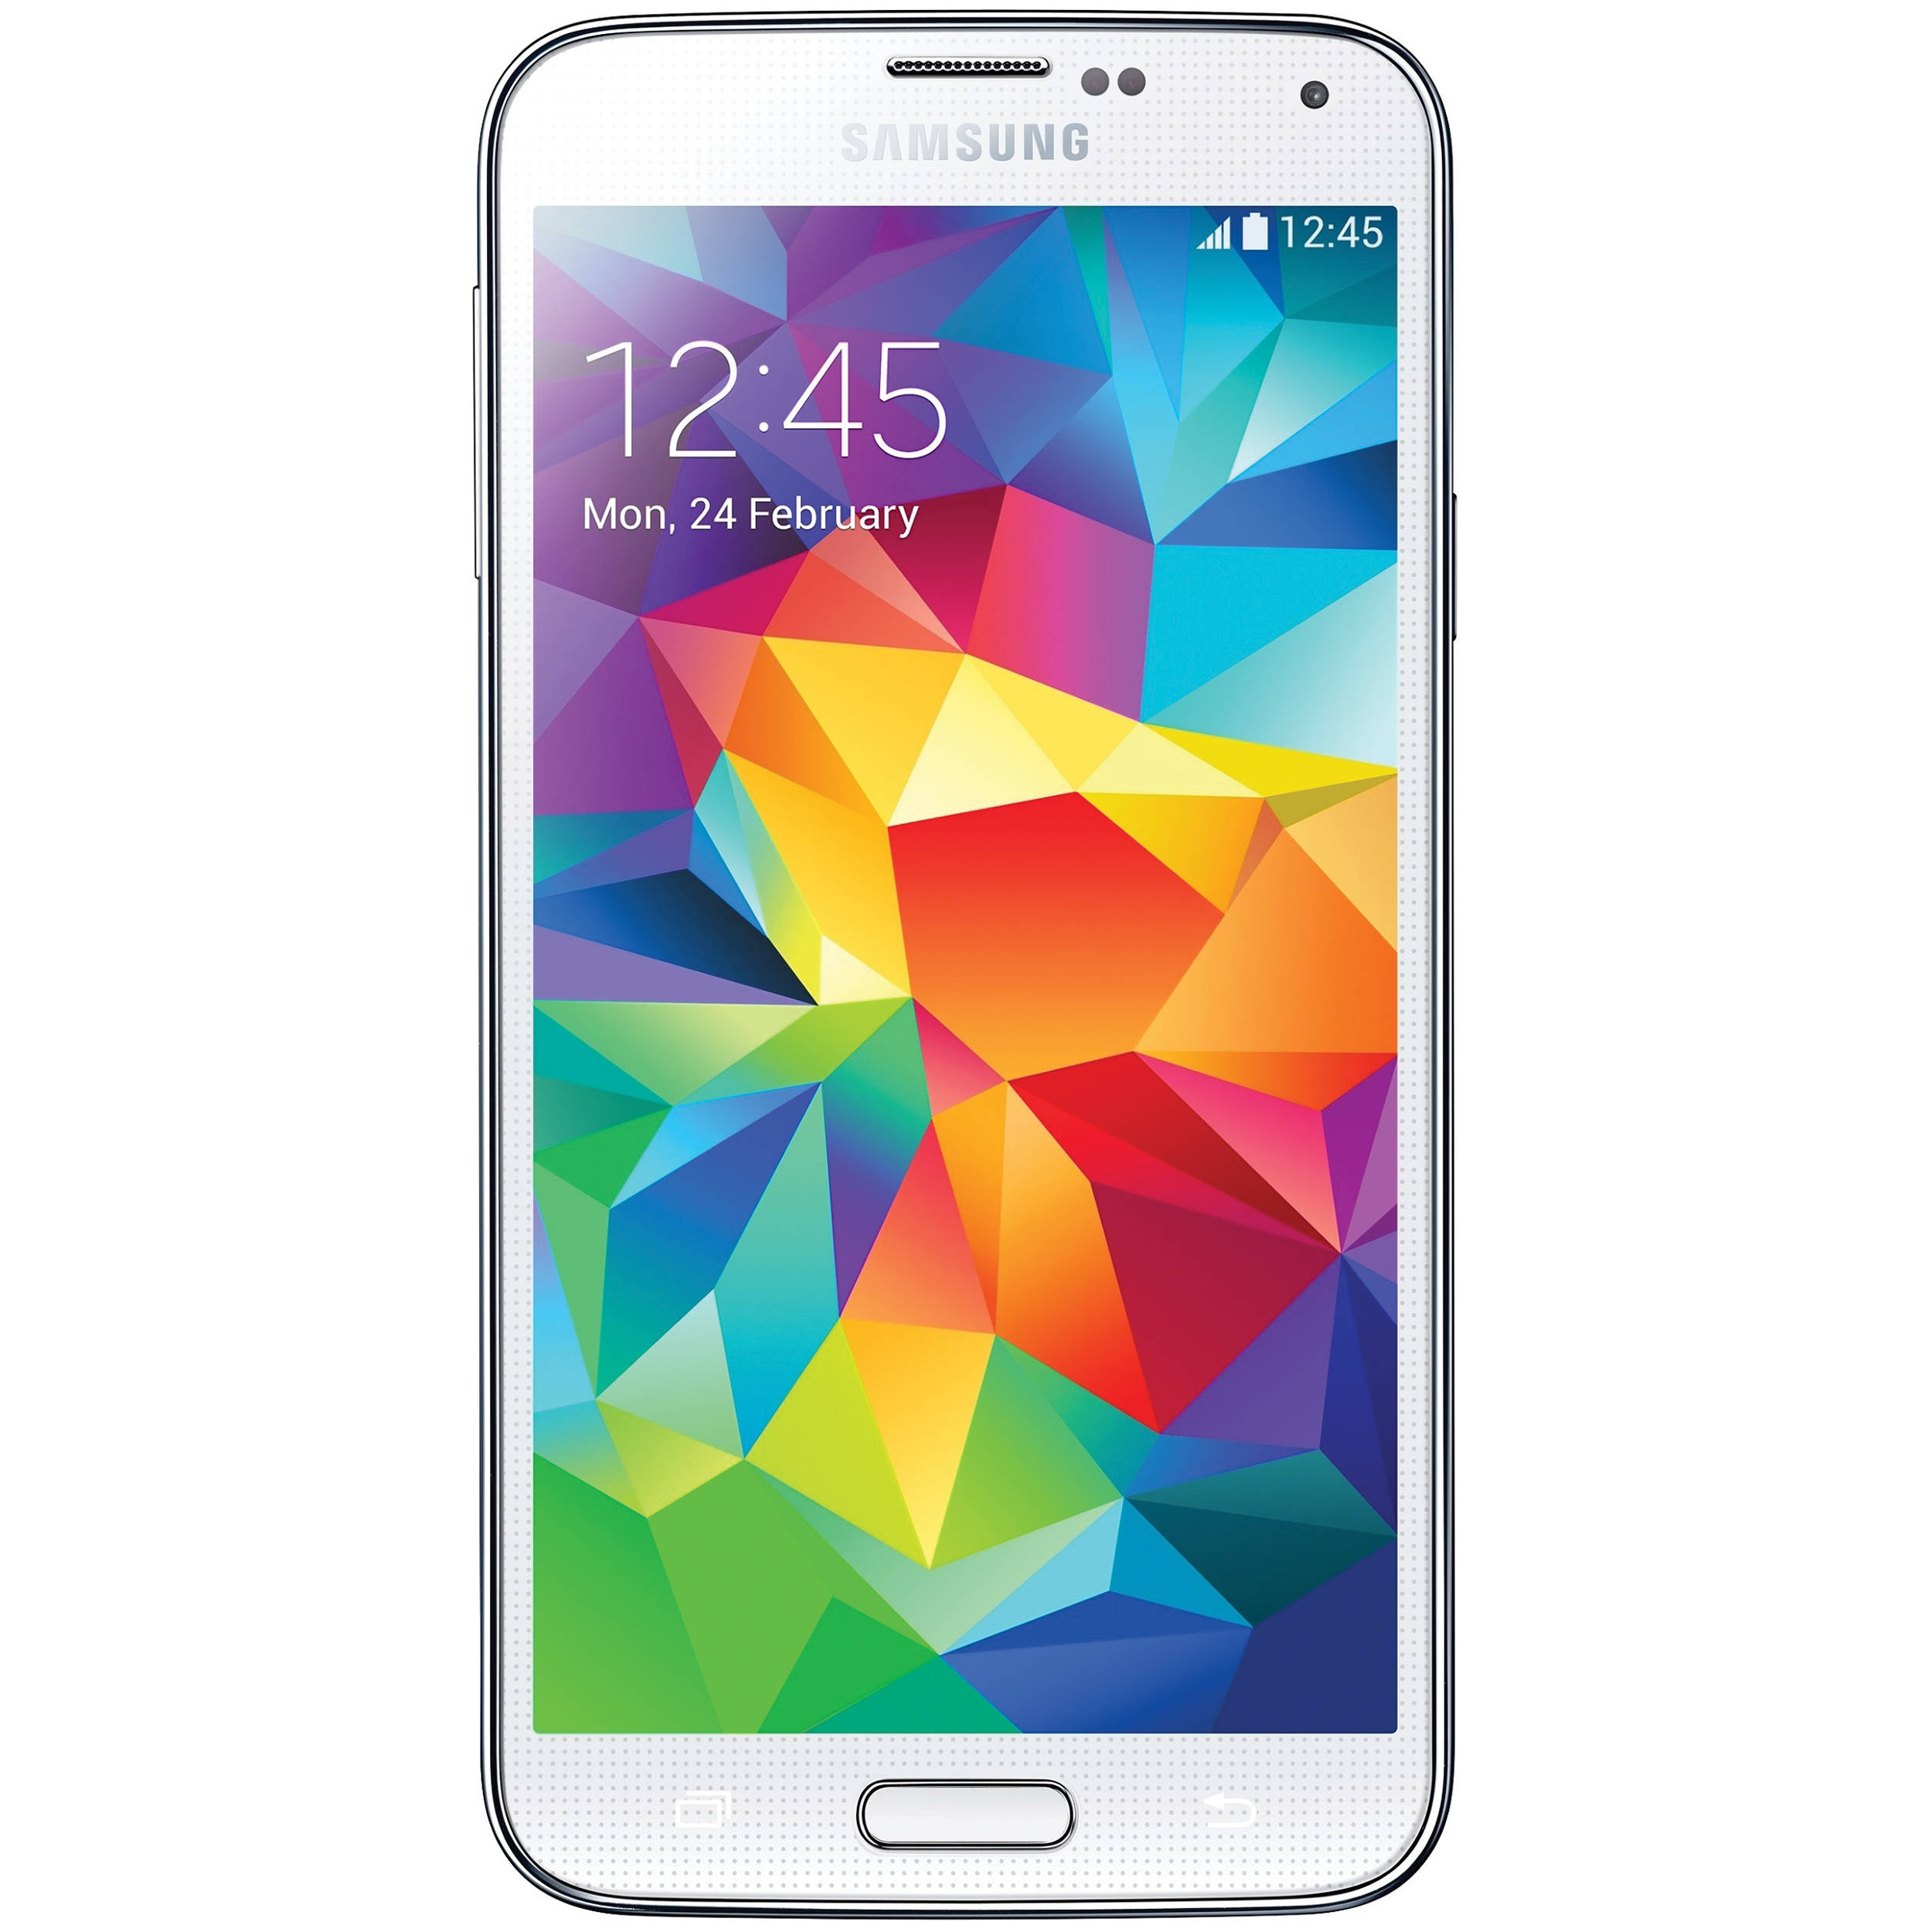 Samsung Galaxy S5 SM-G900A 16GB AT&T Branded Smartphone (Unlocked, Shimmery  White)